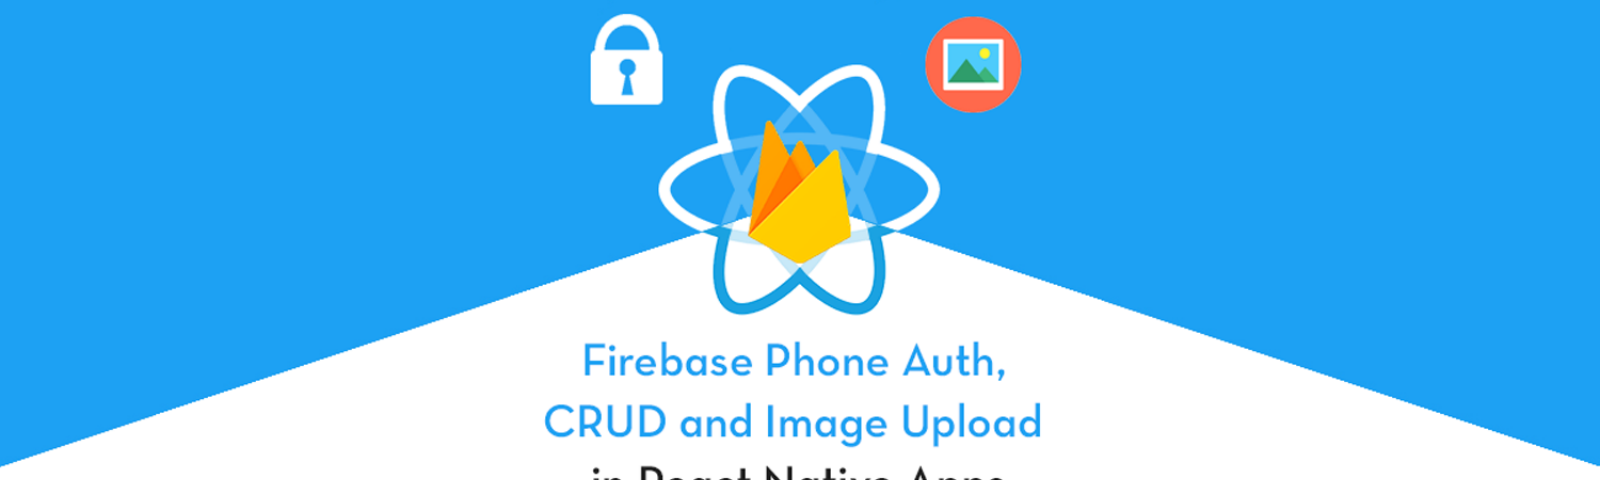 React-Native Firebase Phone Authentication with CRUD Operations and Image Upload on storage